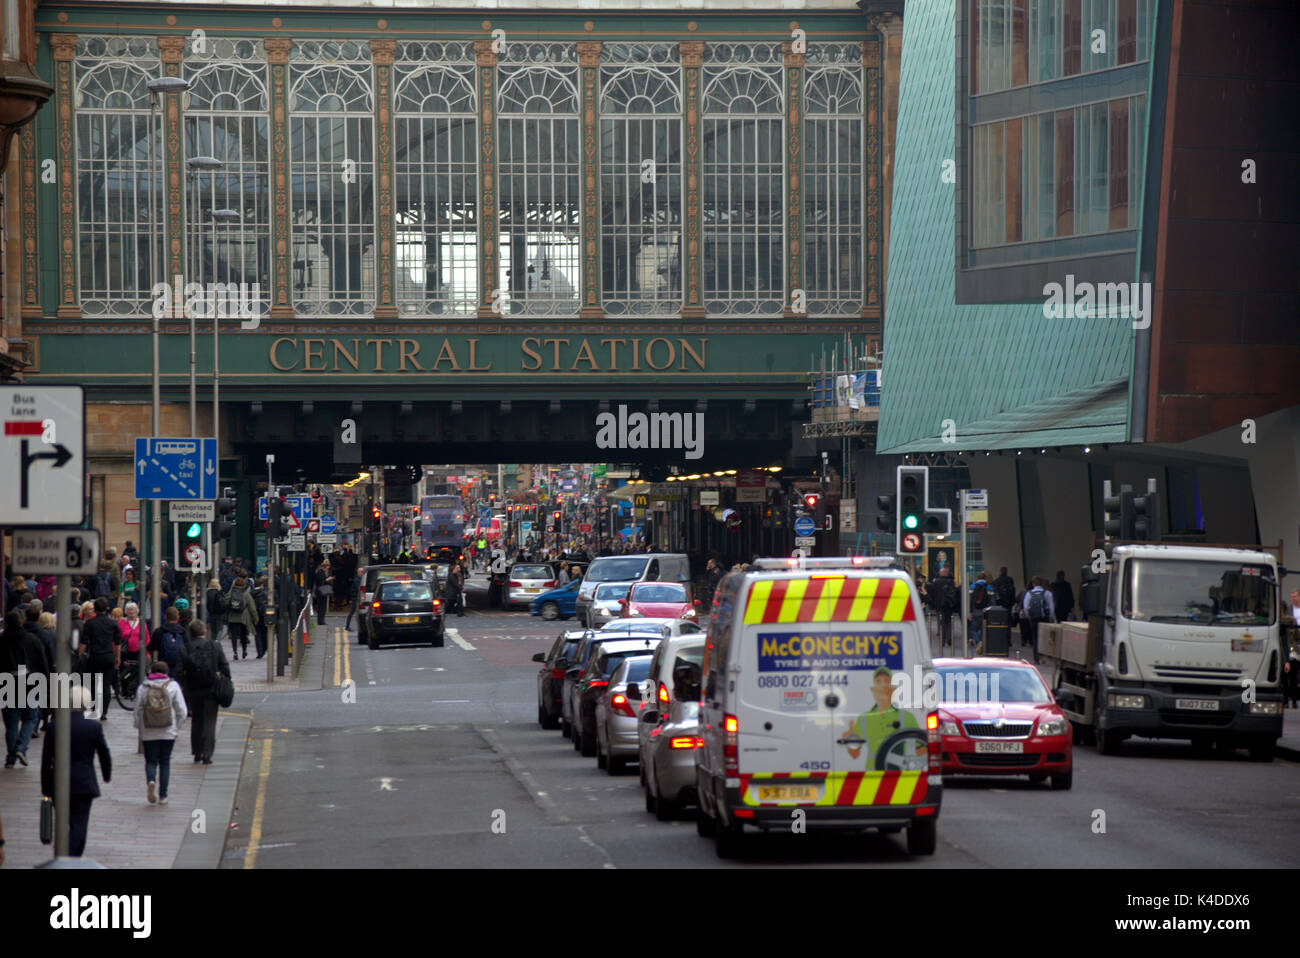 'central station' pollution hotspot  Hielanman's Umbrella Highlanders umbrella argyle and hope street Glasgow busy traffic - Stock Image